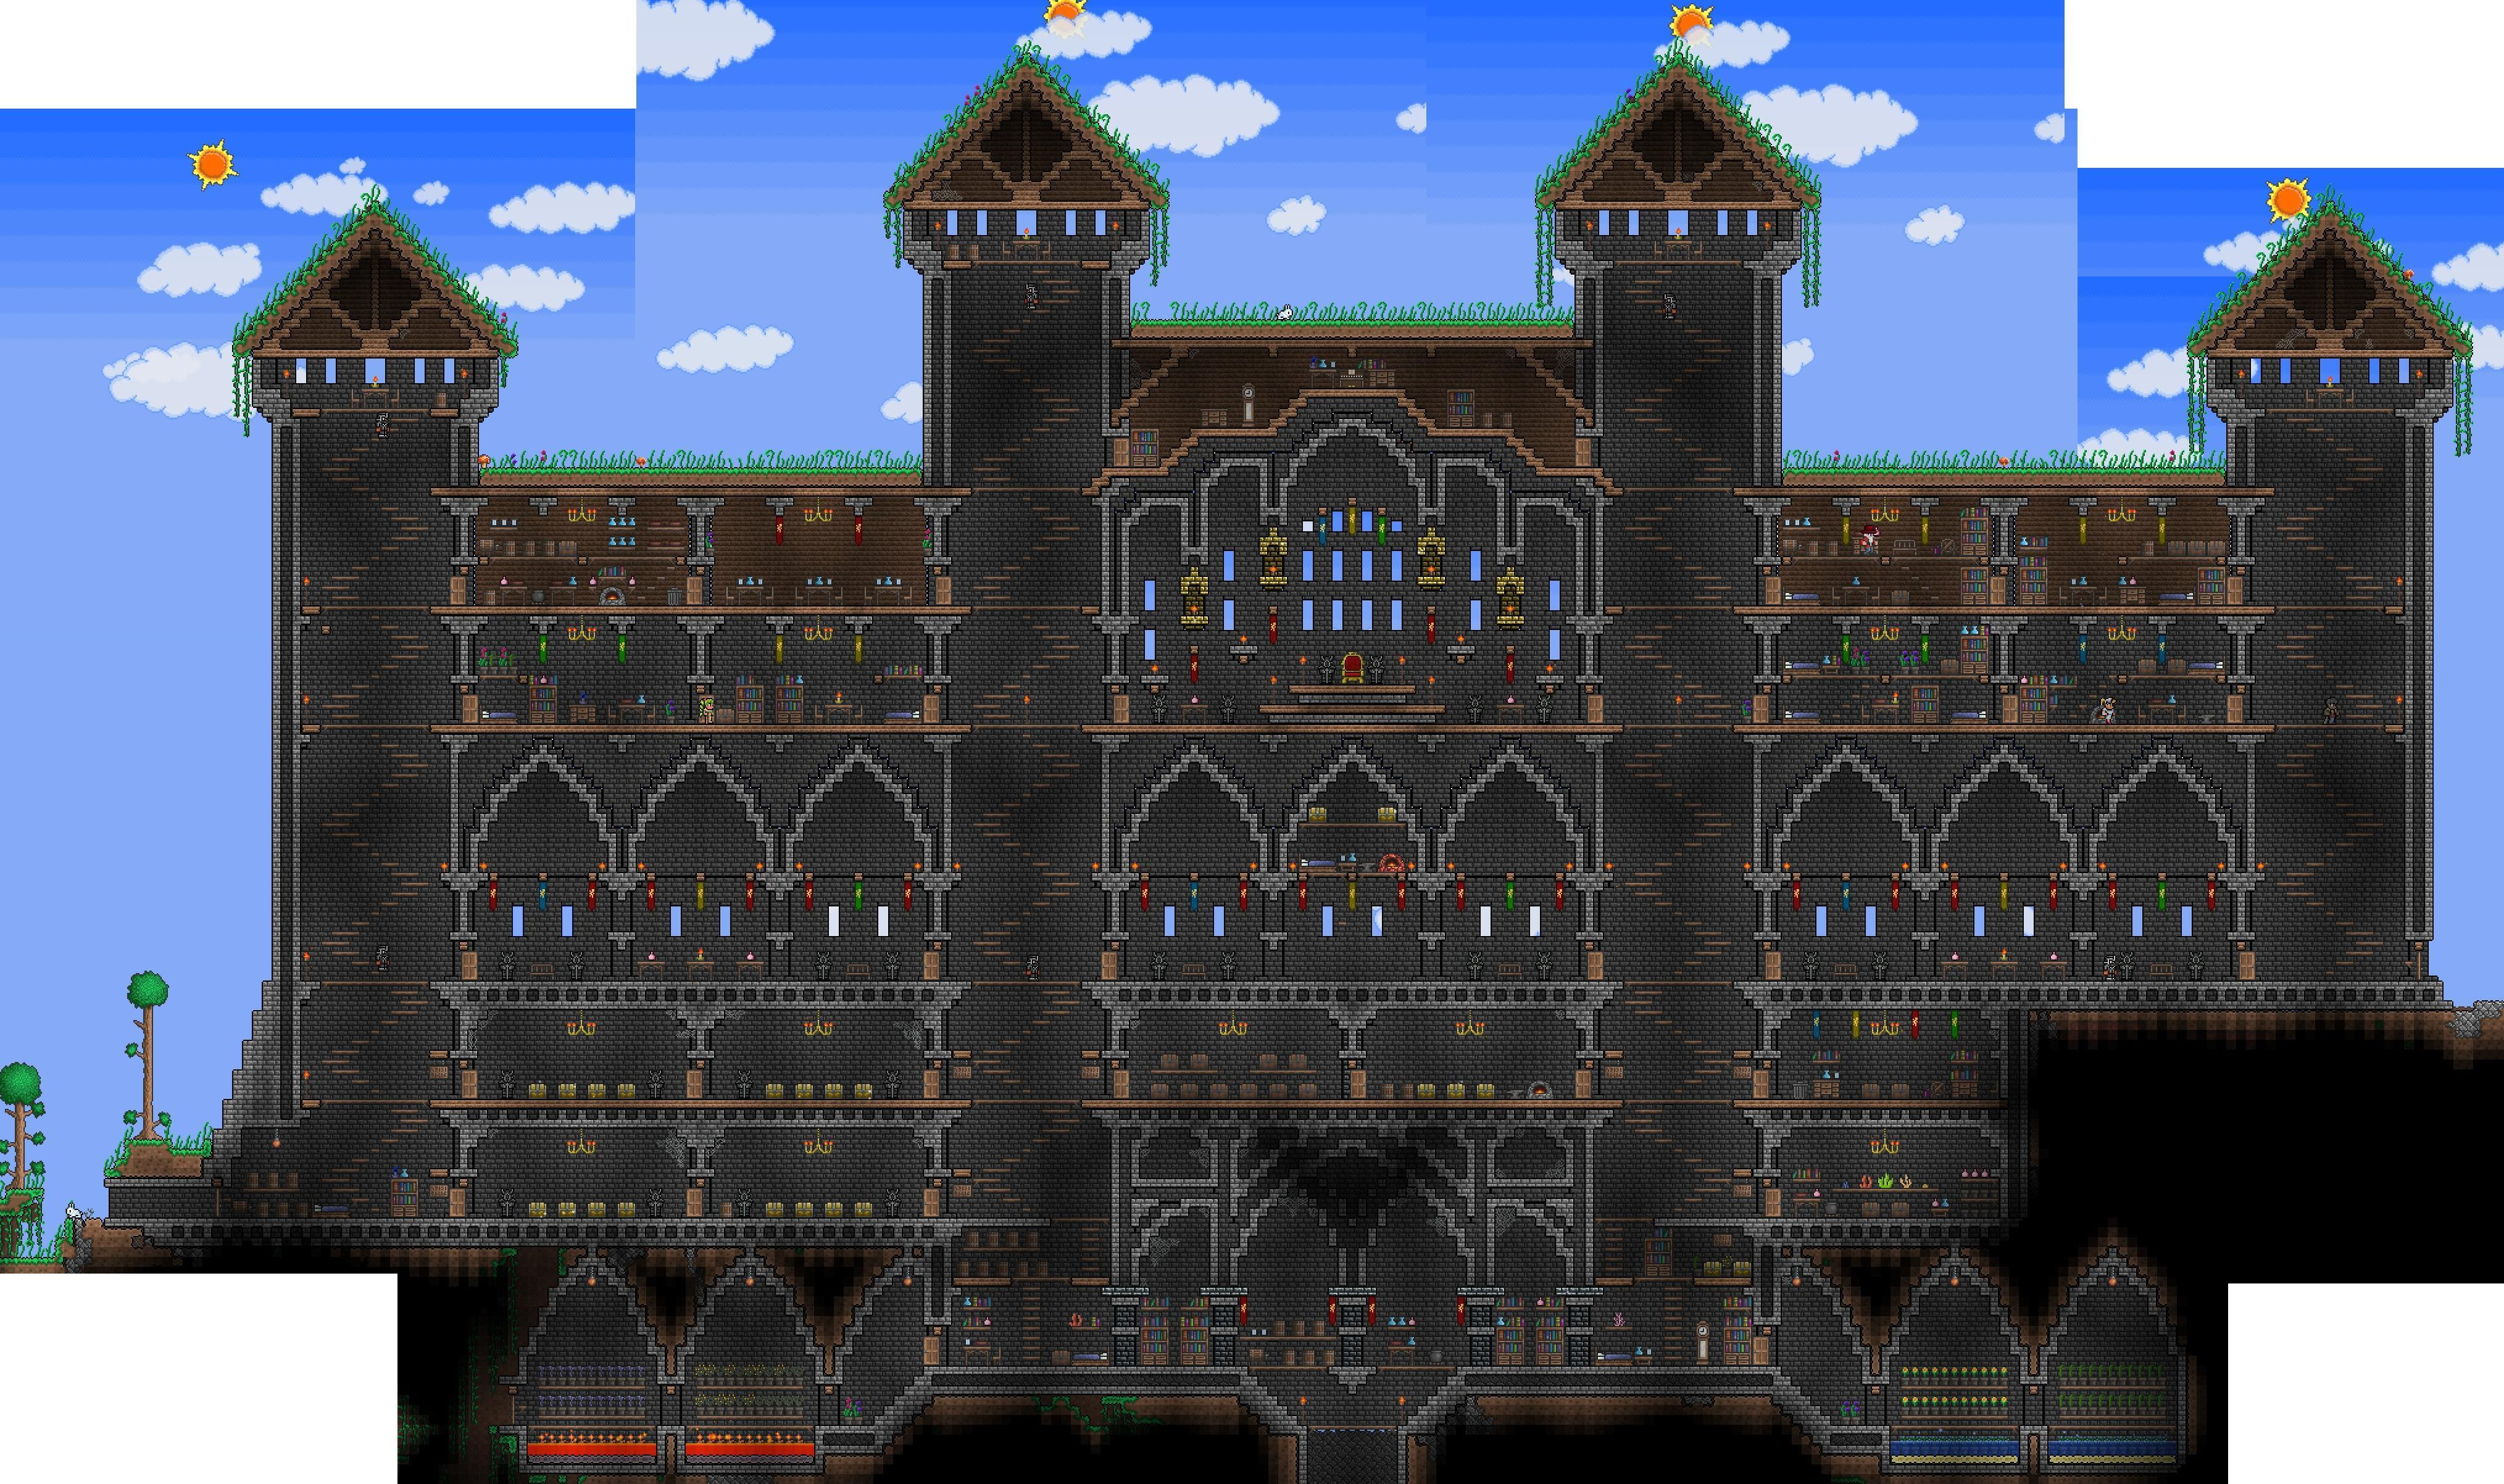 Terraria castle tower castle tower any tips terraria - Terraria Castle Tower Castle Tower Any Tips Terraria 47